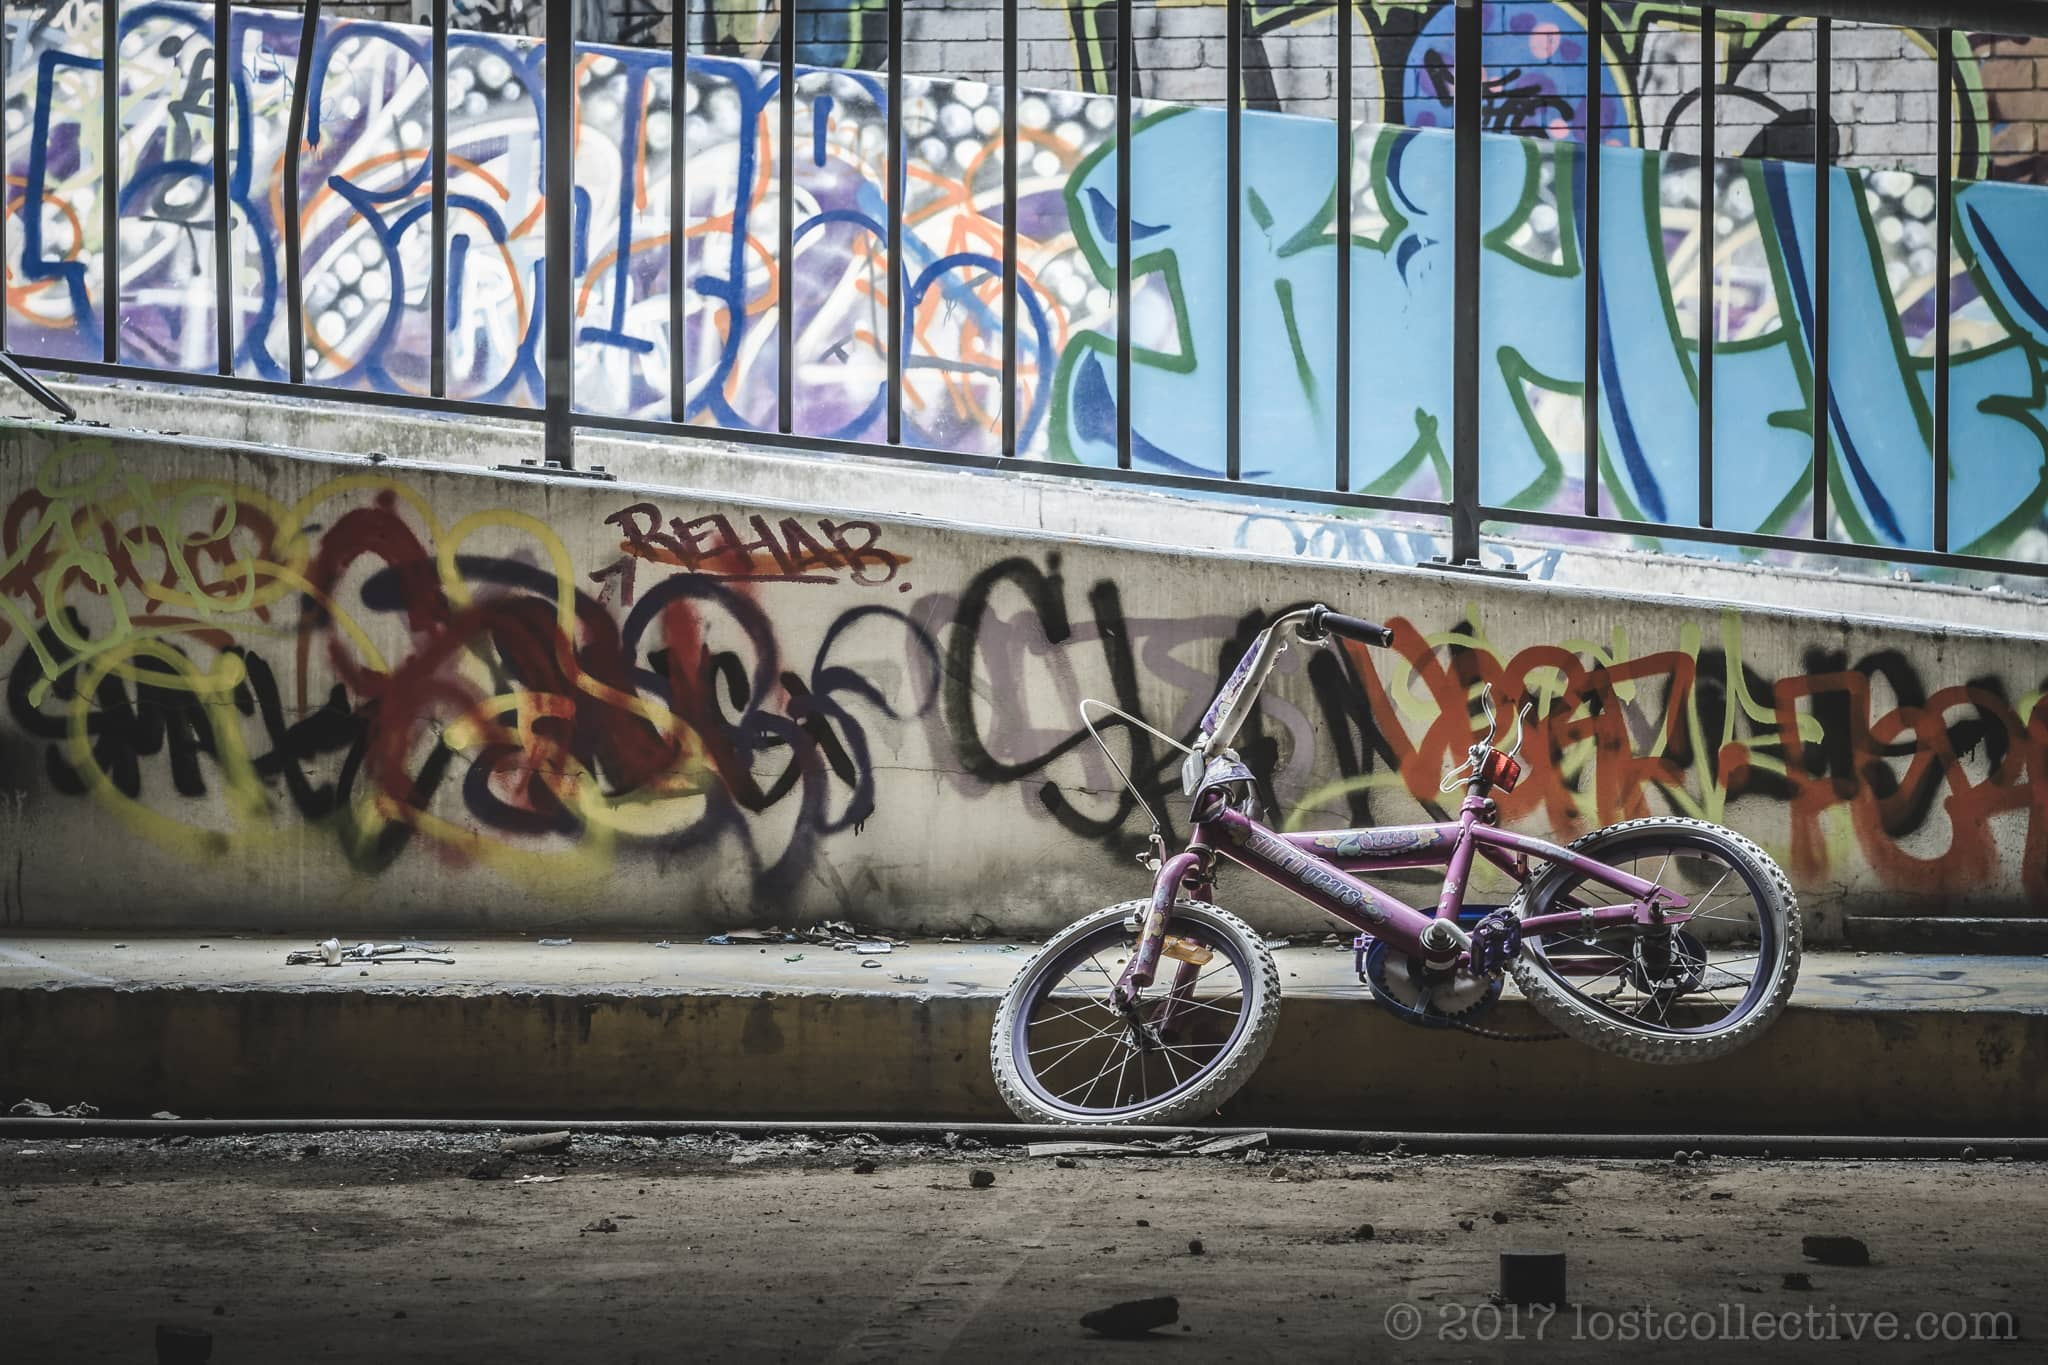 a young girls bicycle against a backdrop of graffiti in the abandoned balmain leagues club - lost collective